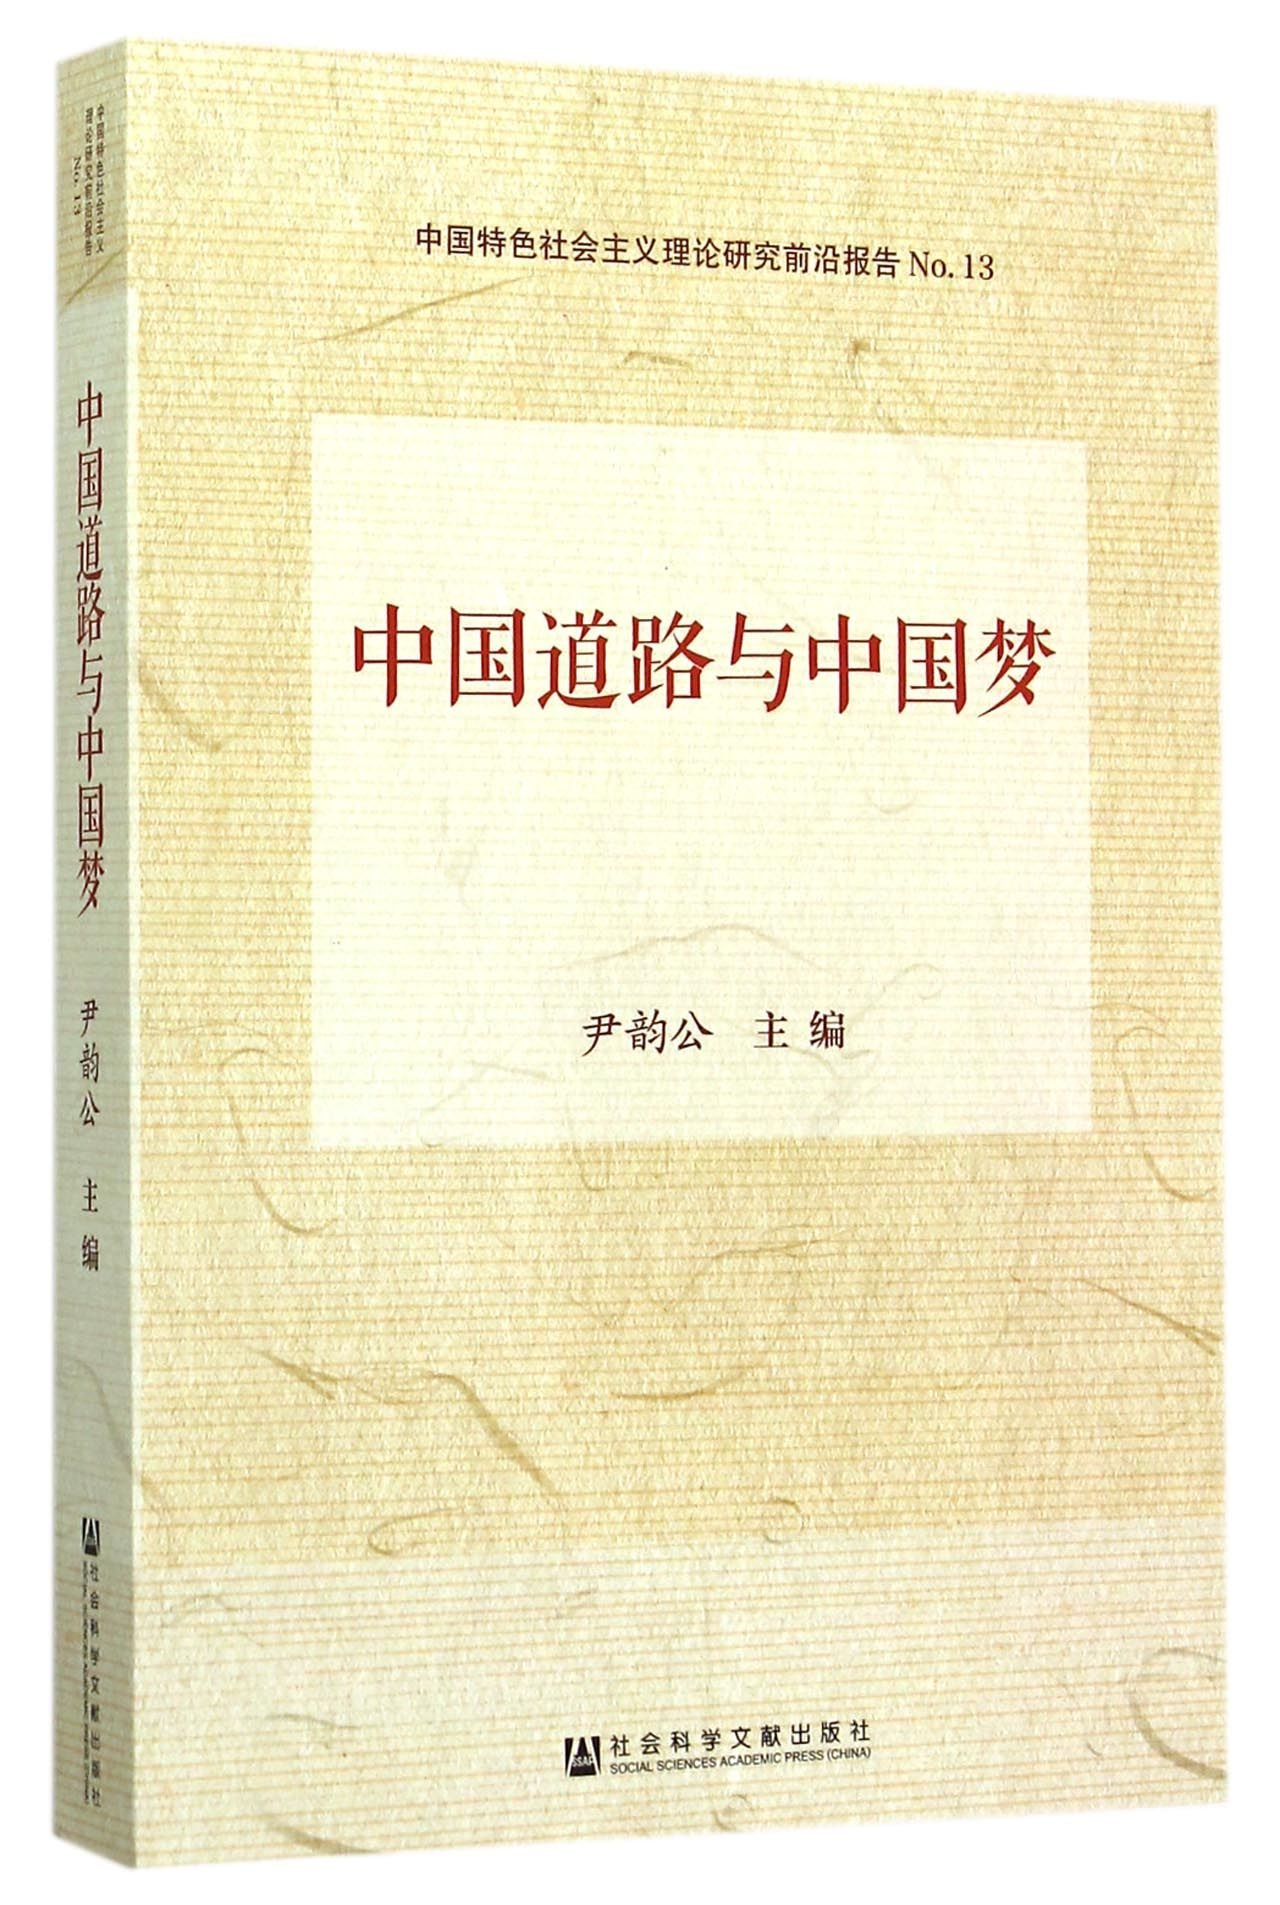 Download Chinese Road and Chinese Dream: Socialism with Chinese Characteristics Theoretical Research Frontiers Report (Chinese Edition) pdf